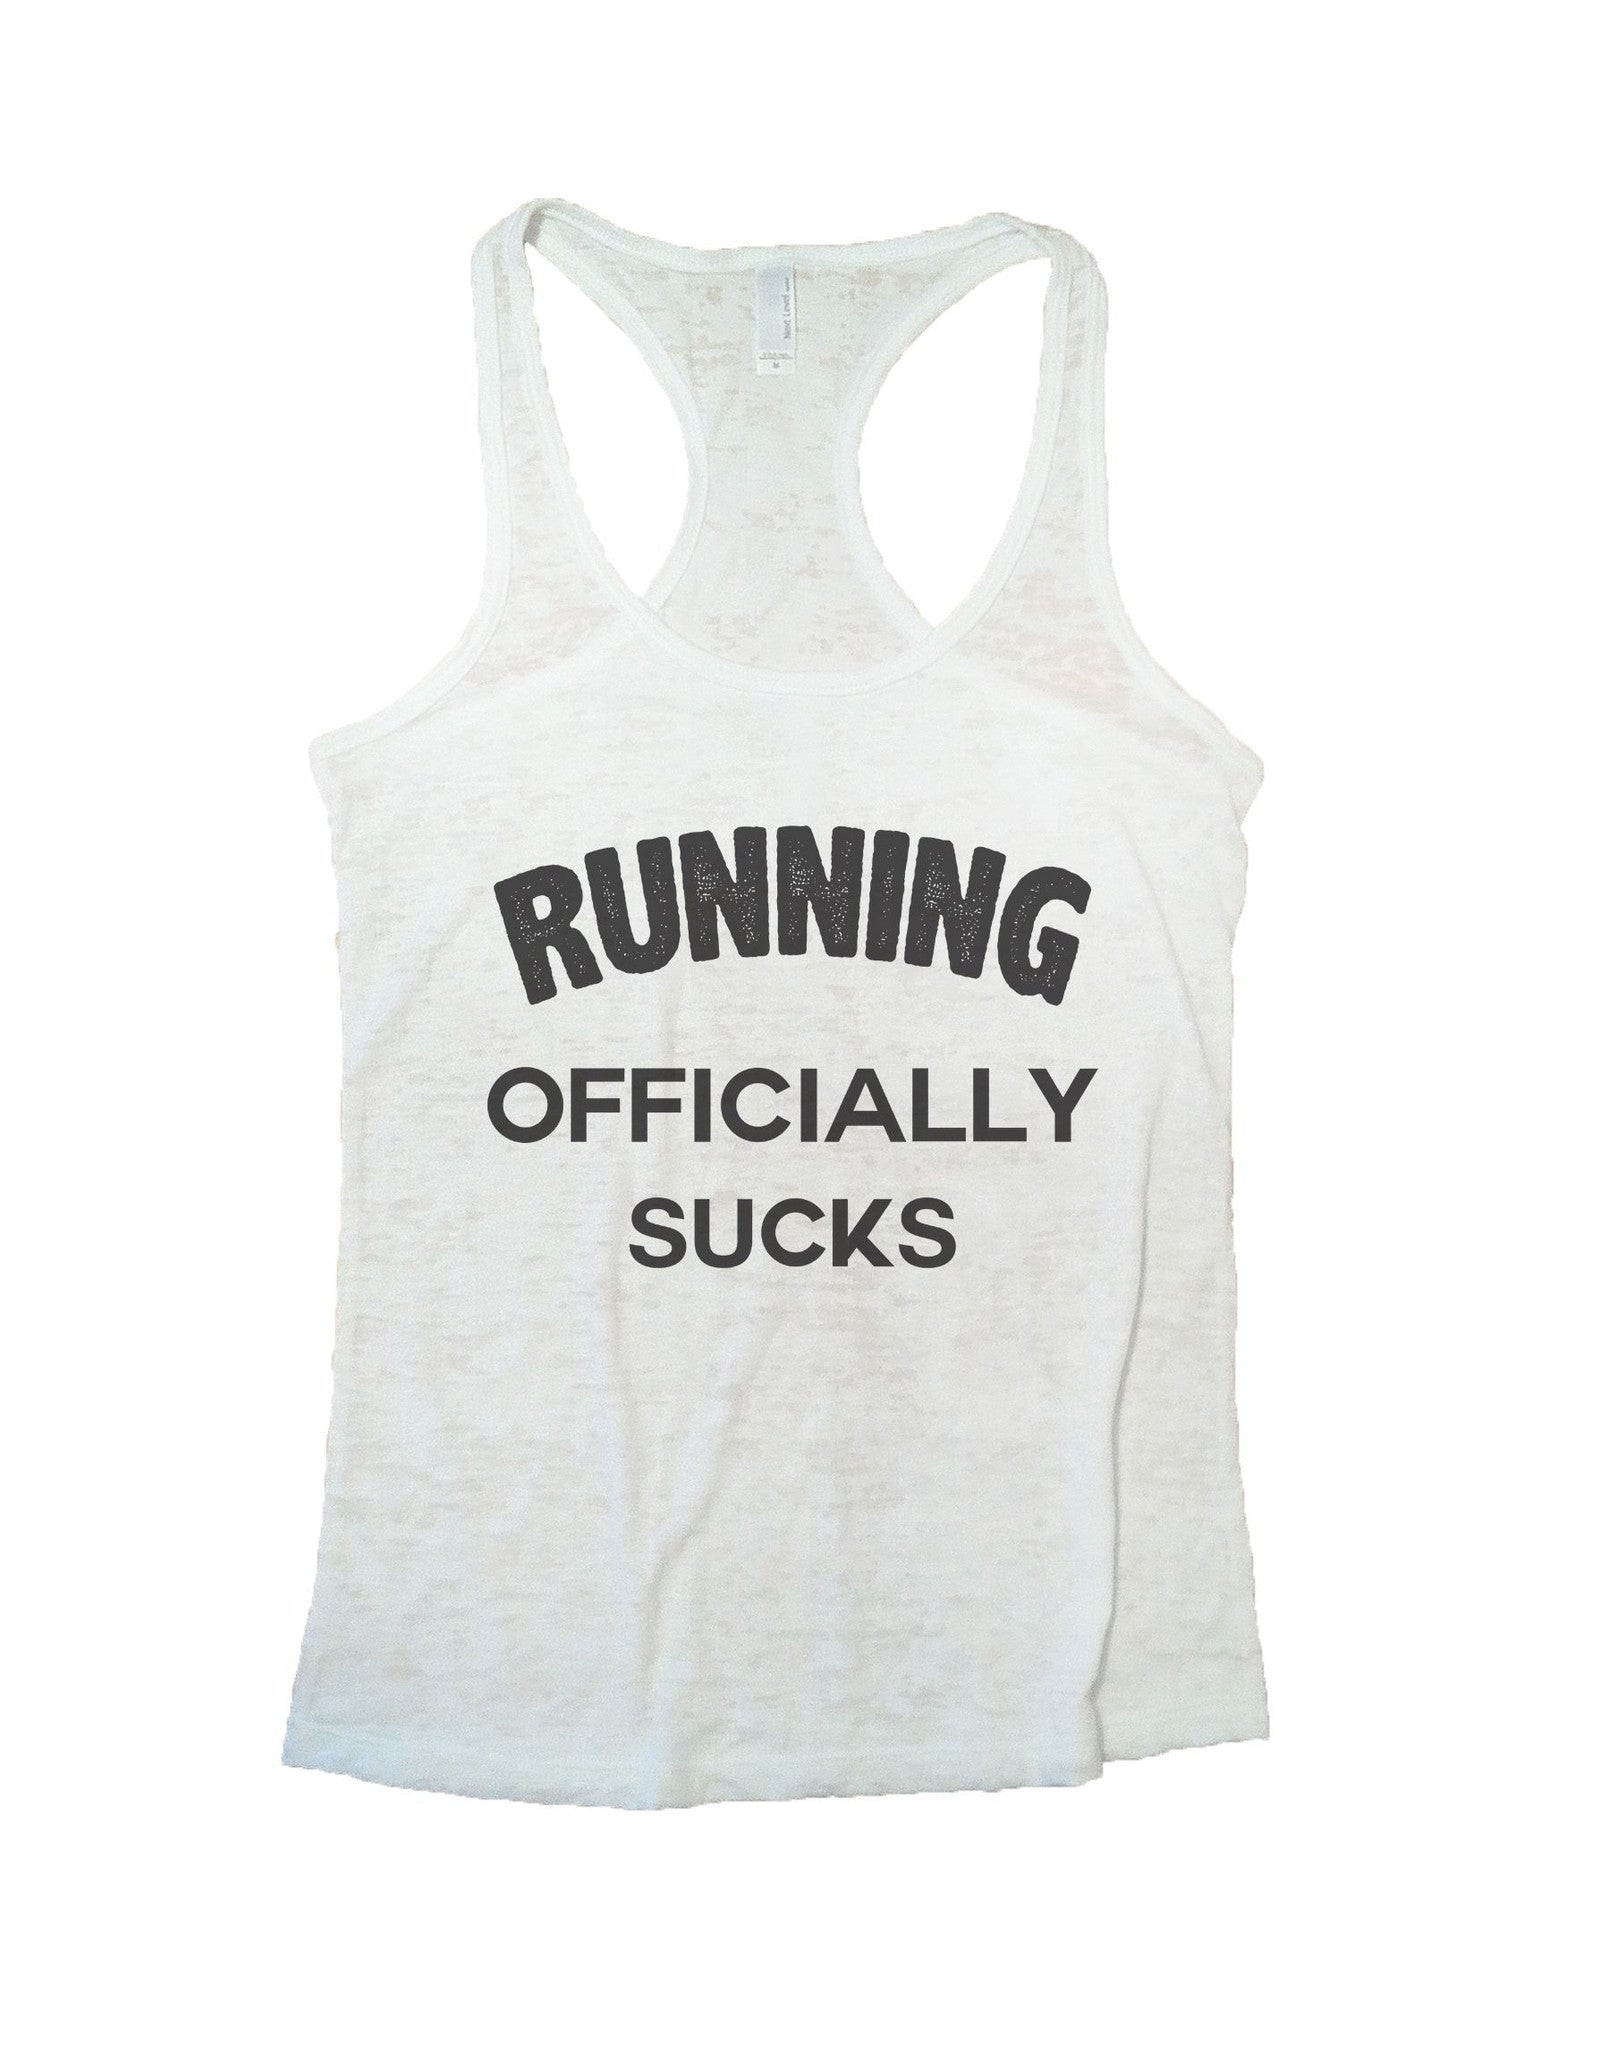 Running Officially Sucks Burnout Tank Top By BurnoutTankTops.com - 645 - Funny Shirts Tank Tops Burnouts and Triblends  - 5